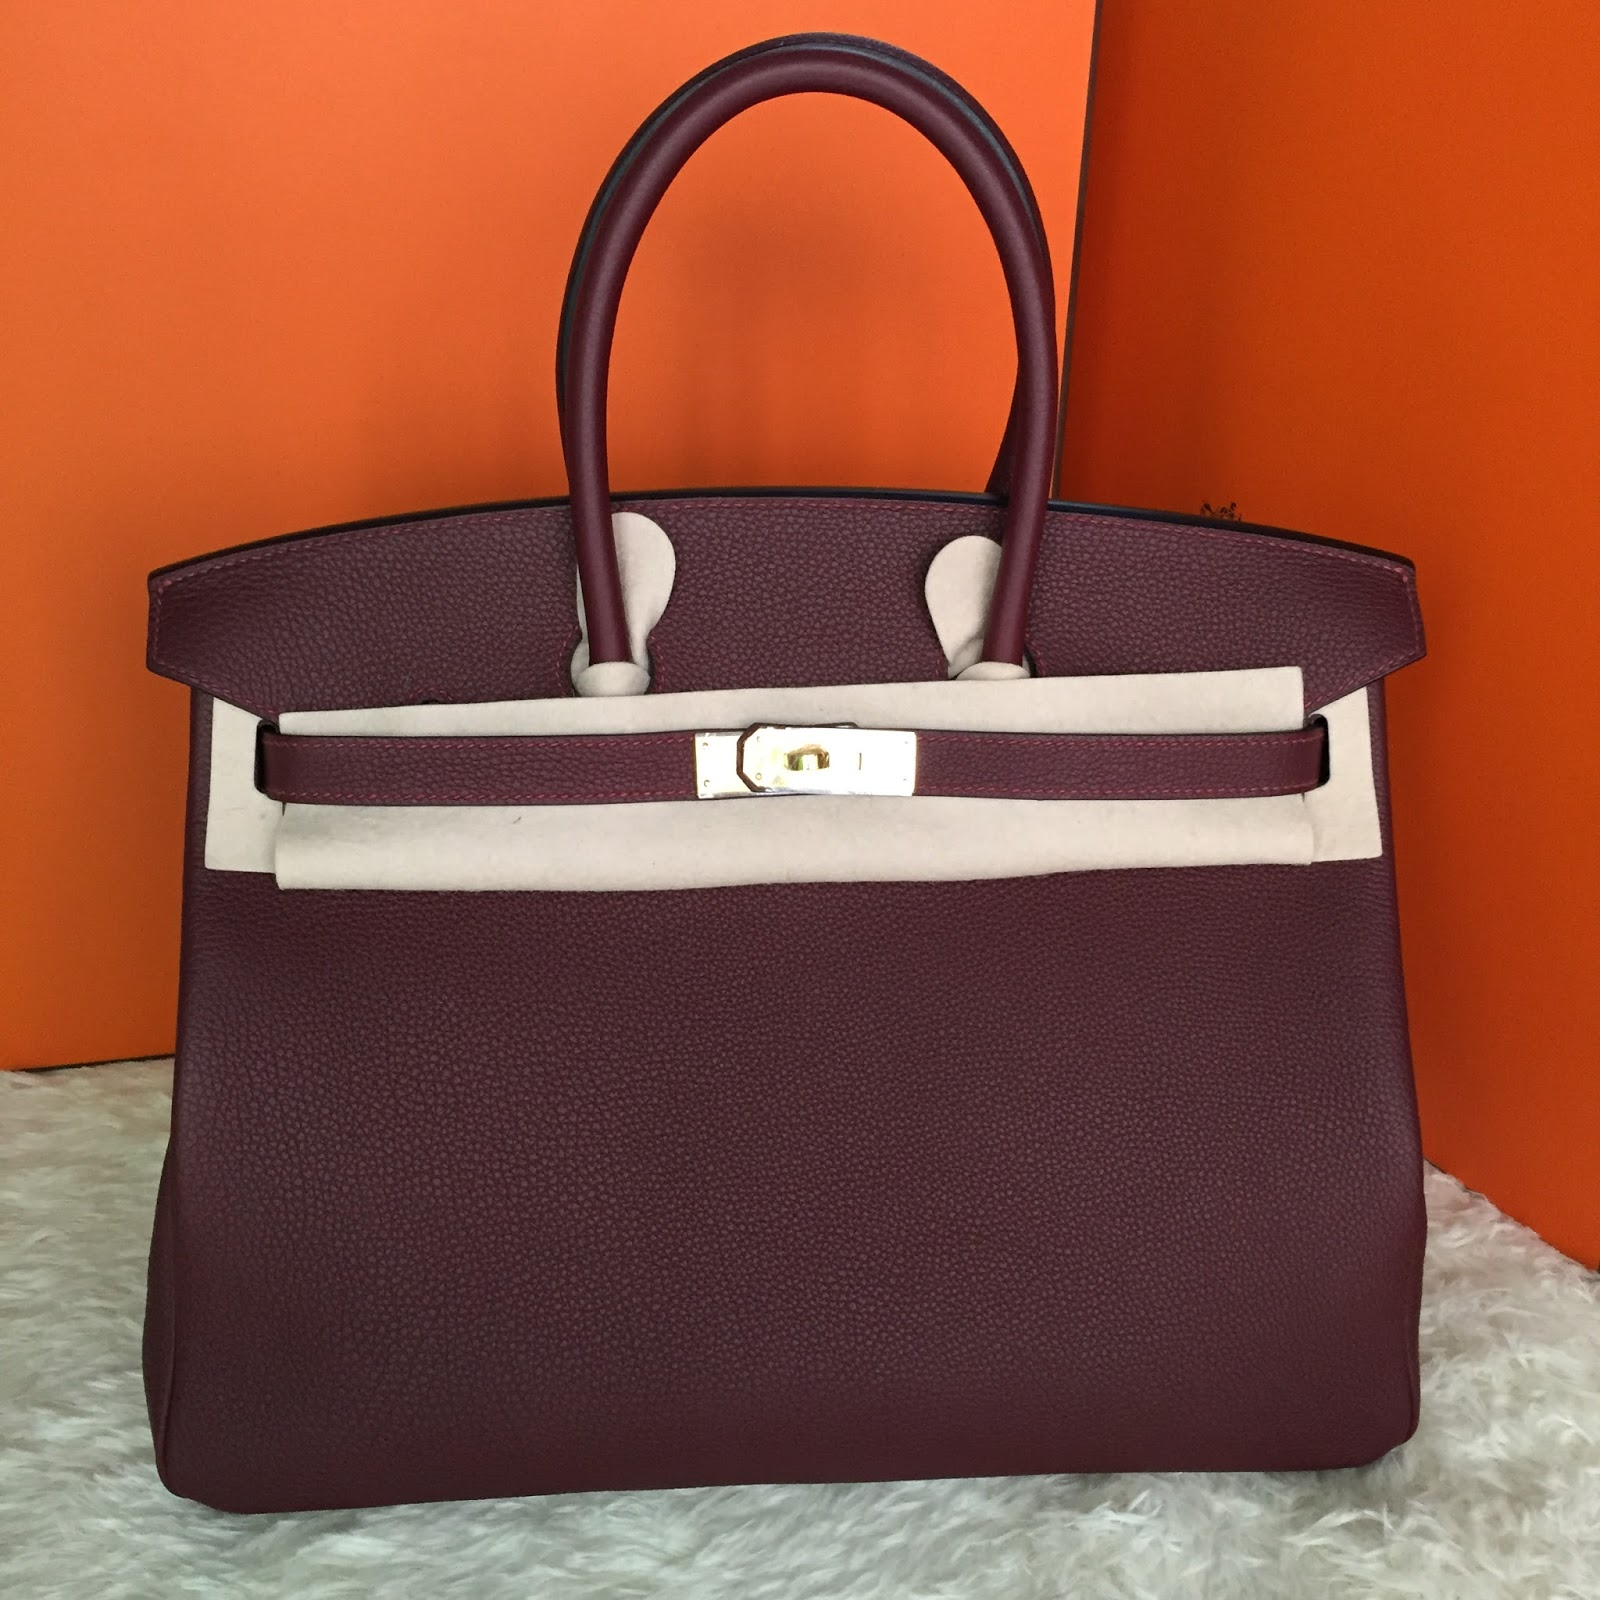 26aac39b8f Pre shipment Photos of Hand Stitched Hermes Birkin 35cm Bag Rouge H Togo  Leather gold hardware